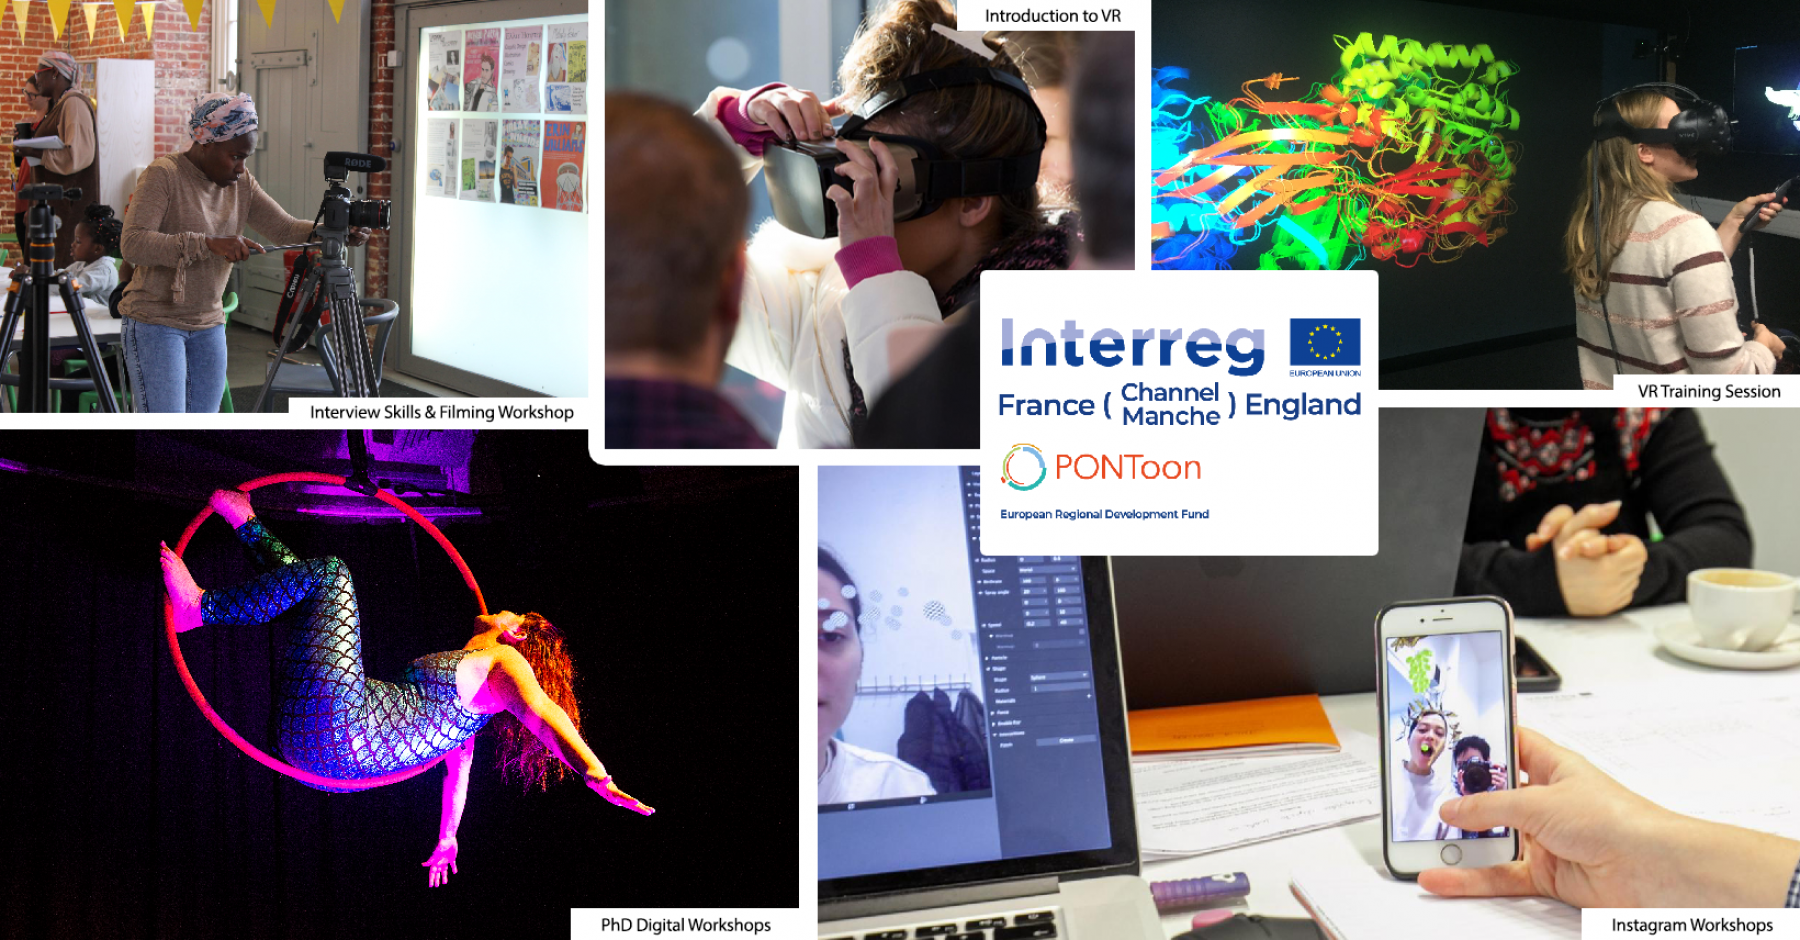 A collection of images depicting various PONToon activities, such as virtual reality, tilt brush, digital circus and digital arts